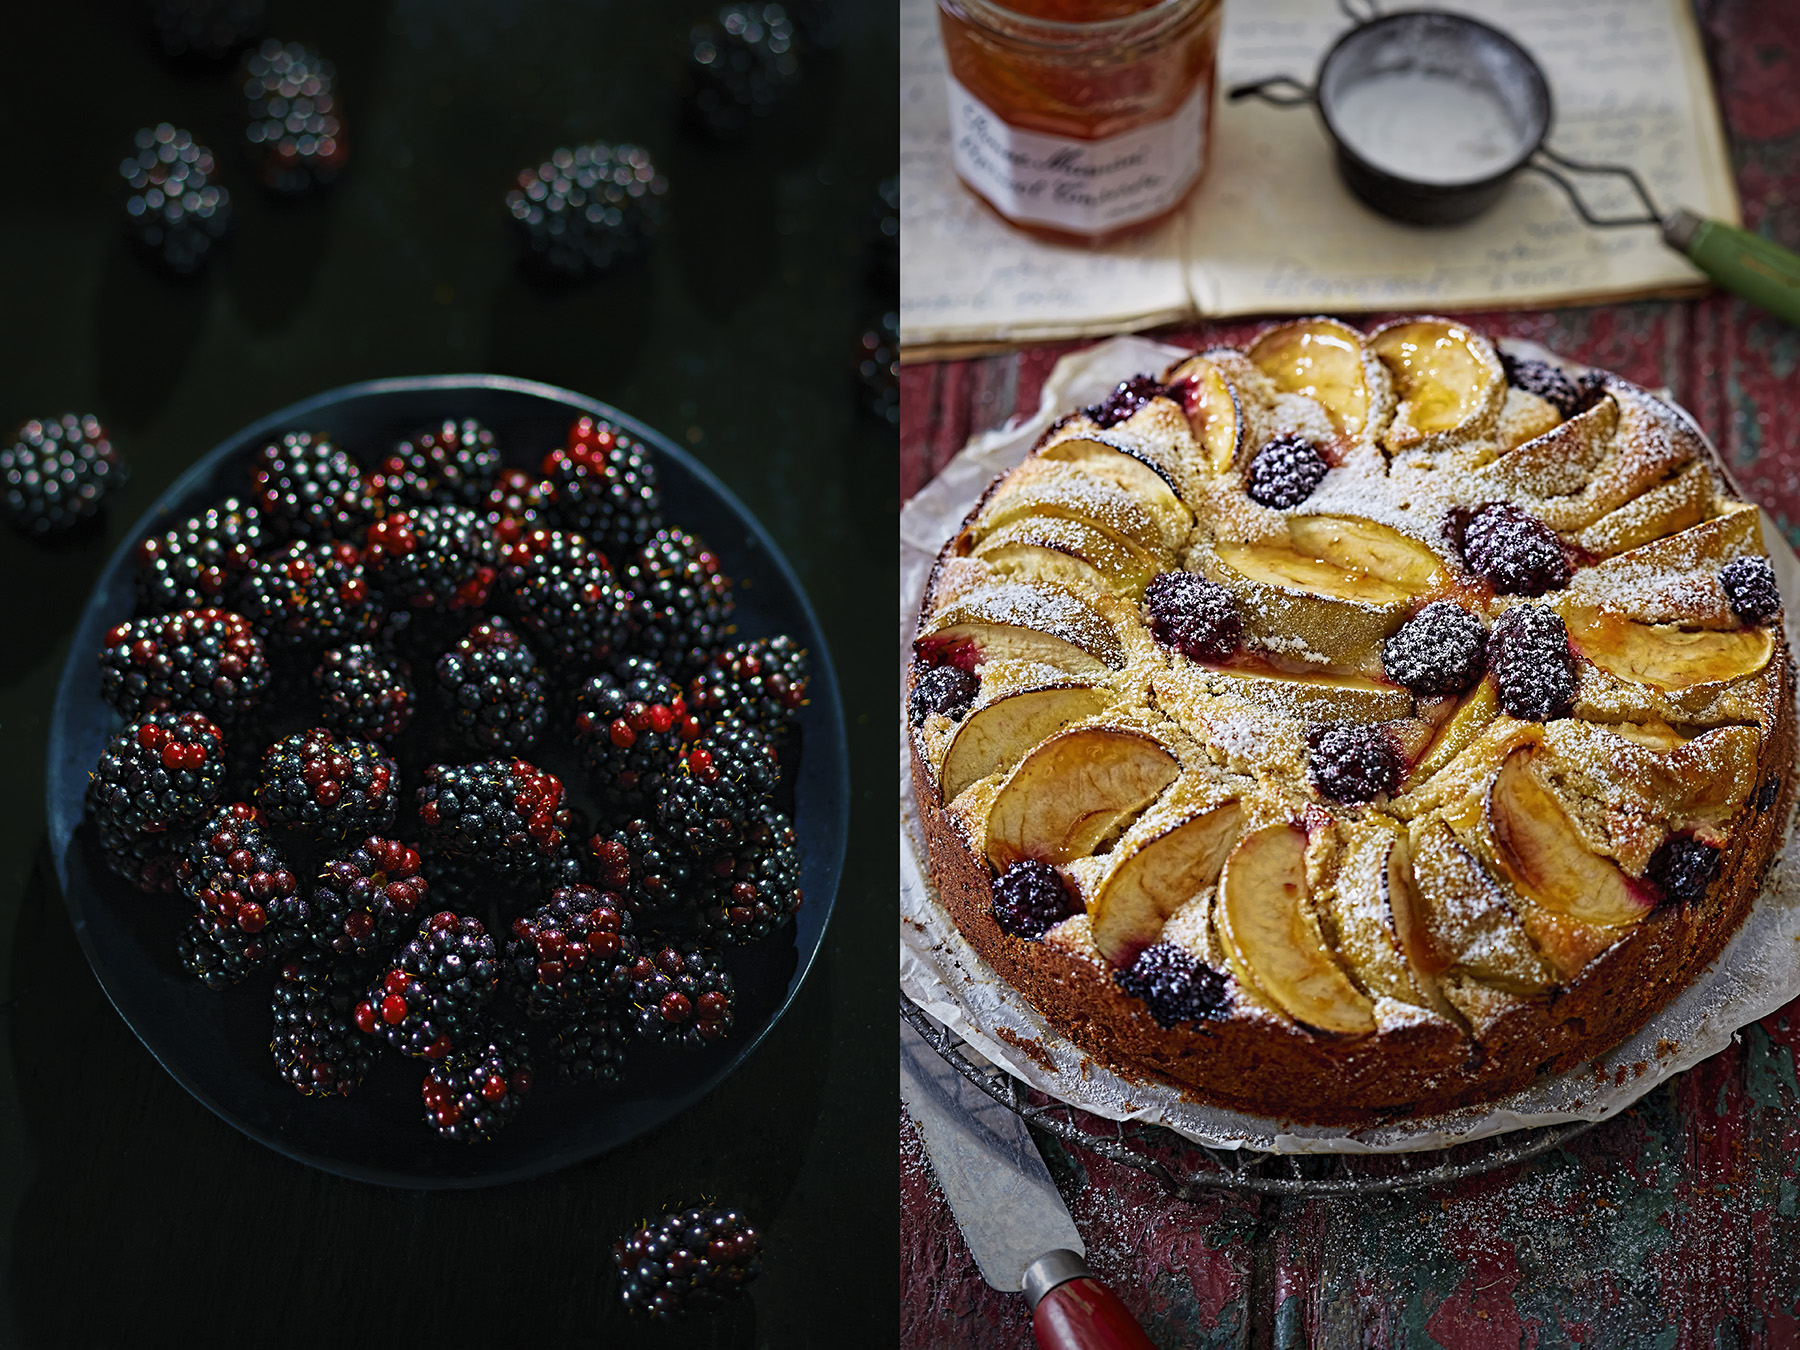 Blackberries and autumn apple and blackberry cake